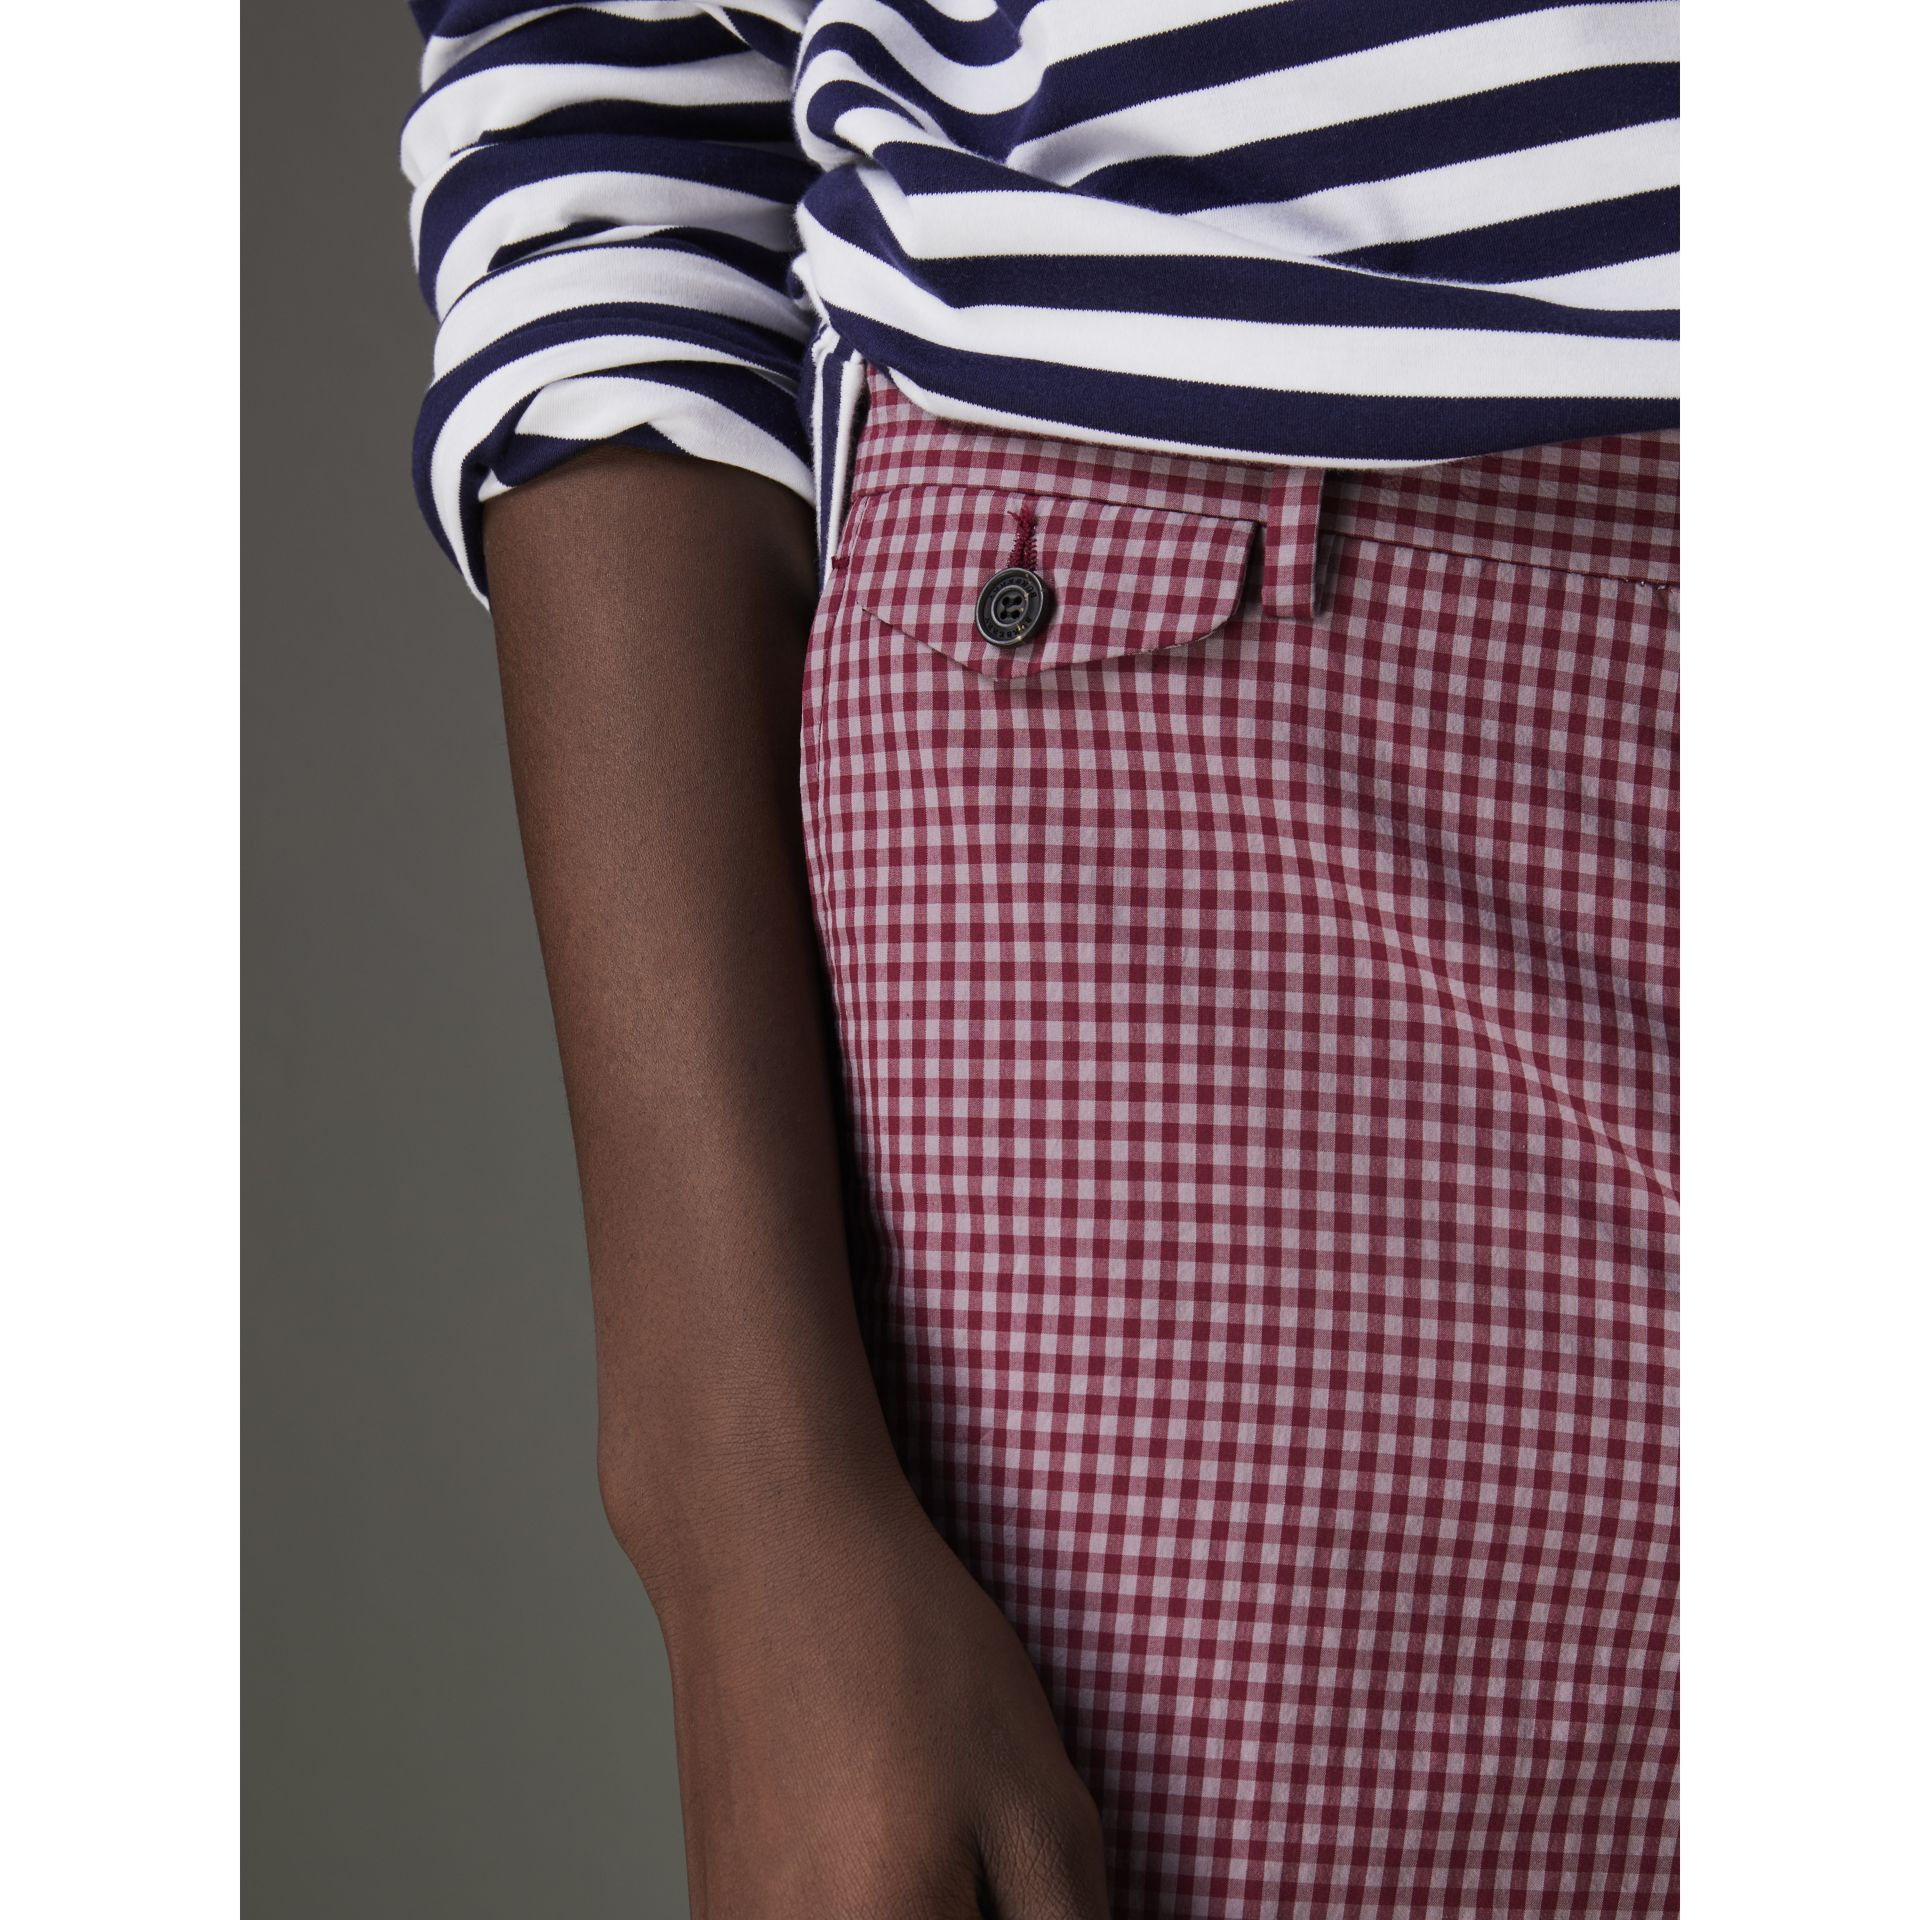 Gingham Cotton Tailored Shorts in Elderberry - Men | Burberry - gallery image 1